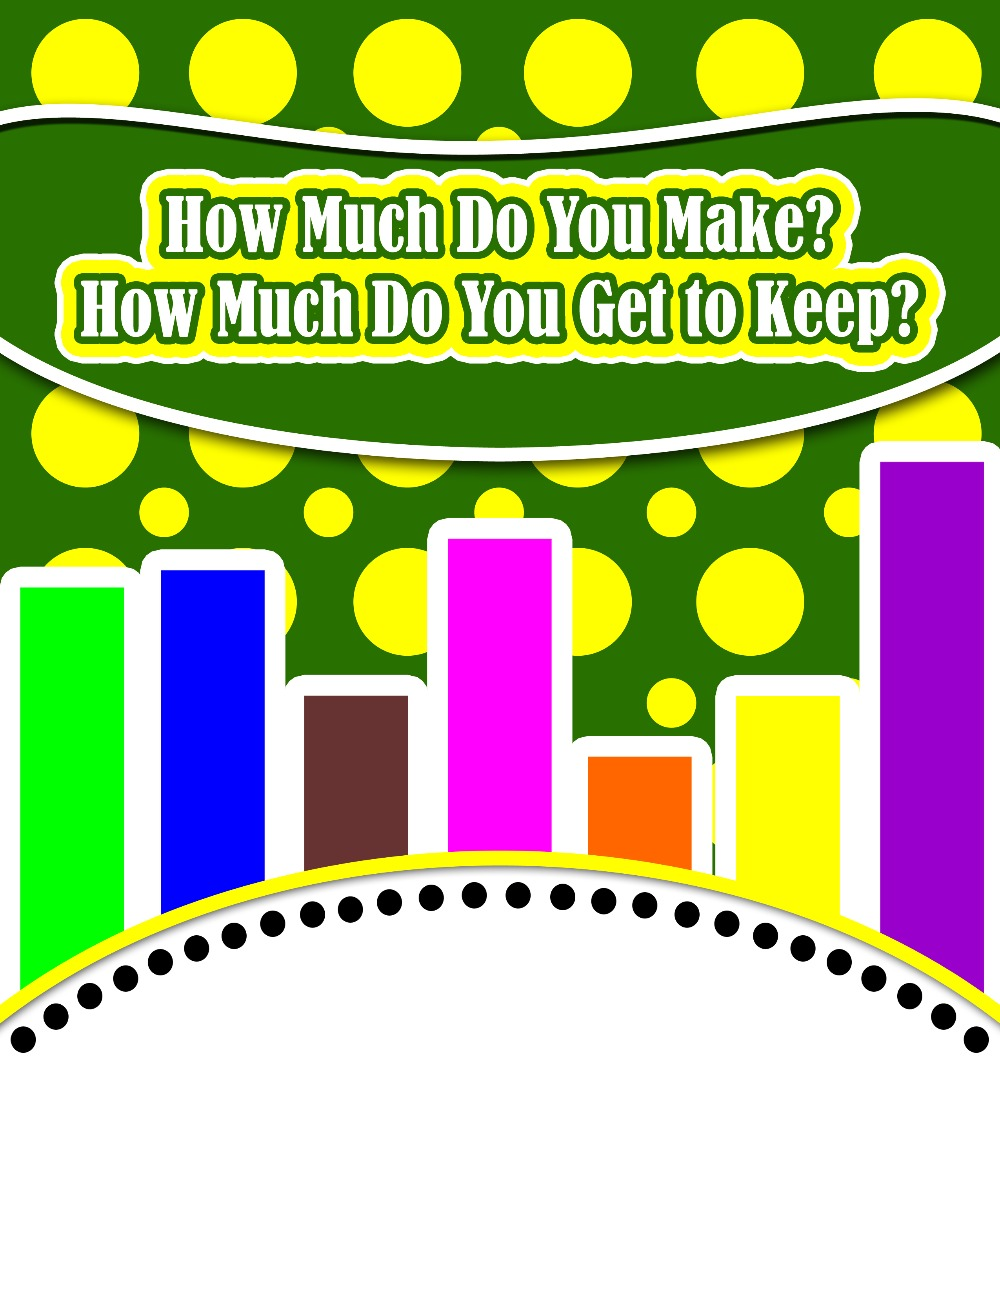 How Much Do You Make? How Much Do You Get to Keep?